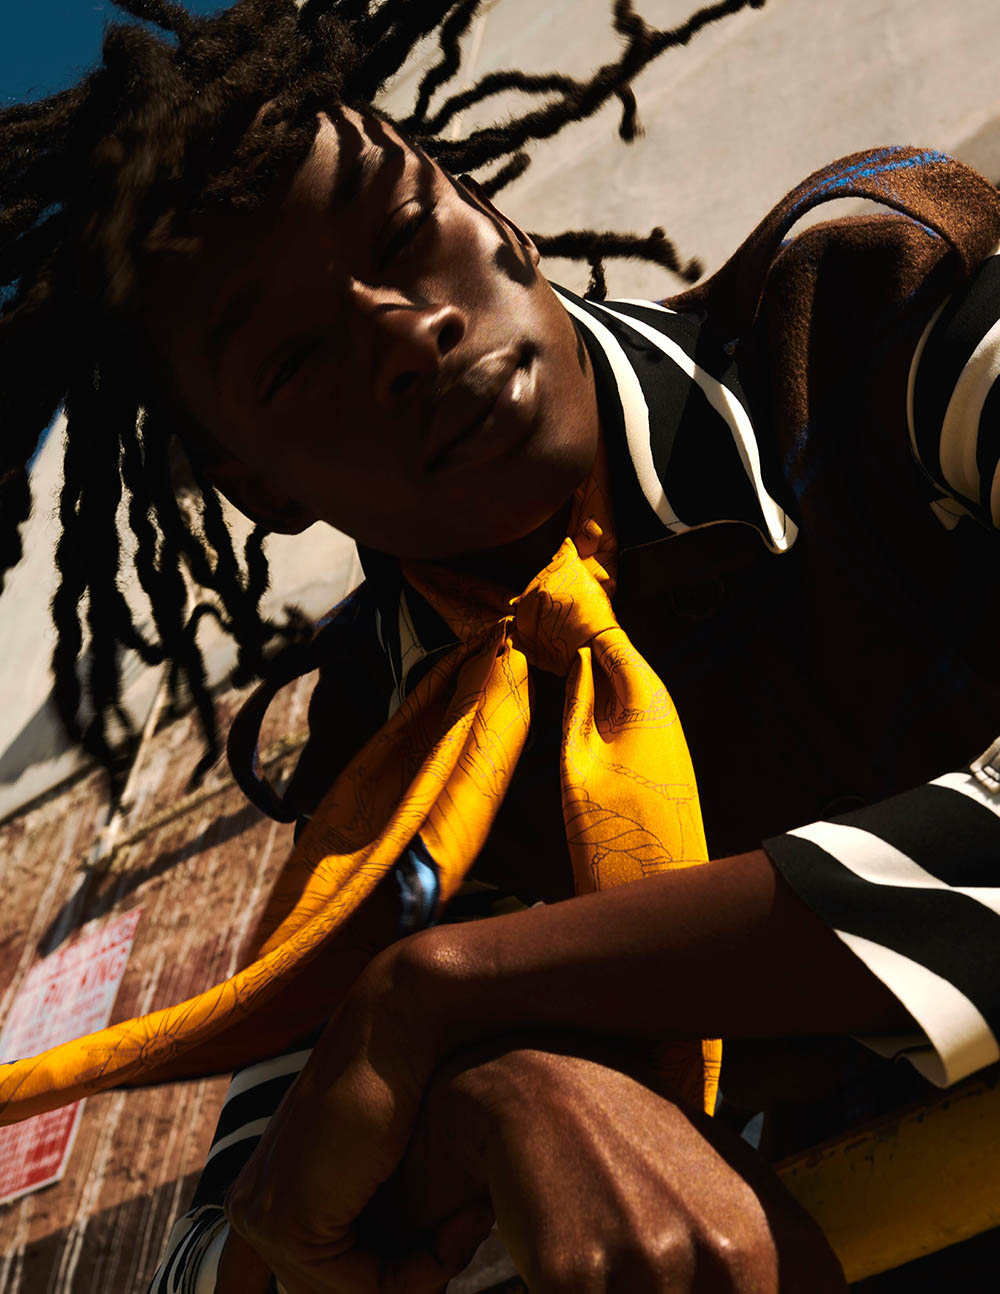 Abdulaye Niang covers Man of Metropolis November 2020 by Jordan Walczak